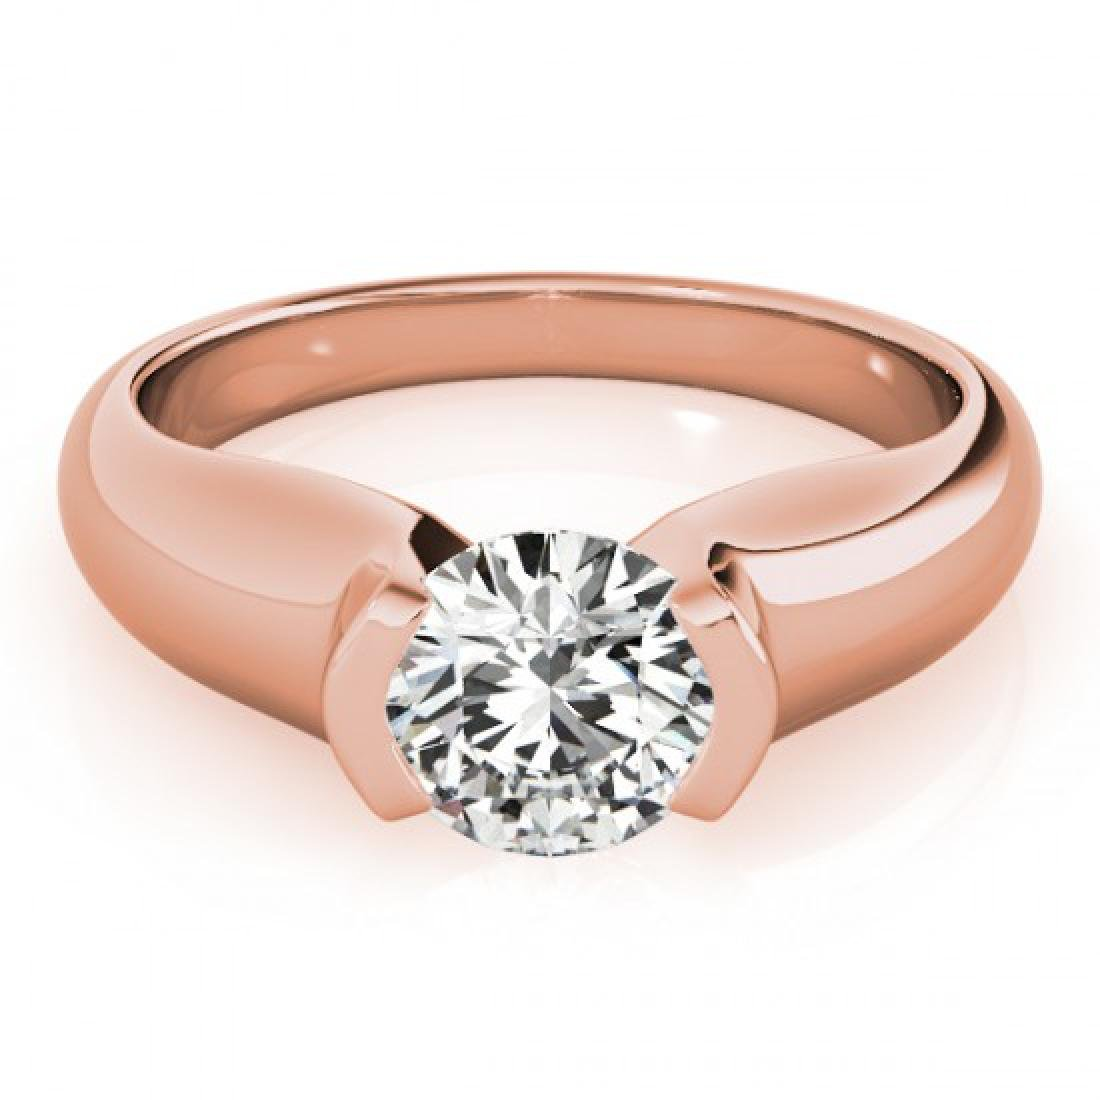 0.5 CTW Certified VS/SI Diamond Solitaire Ring 14K Rose